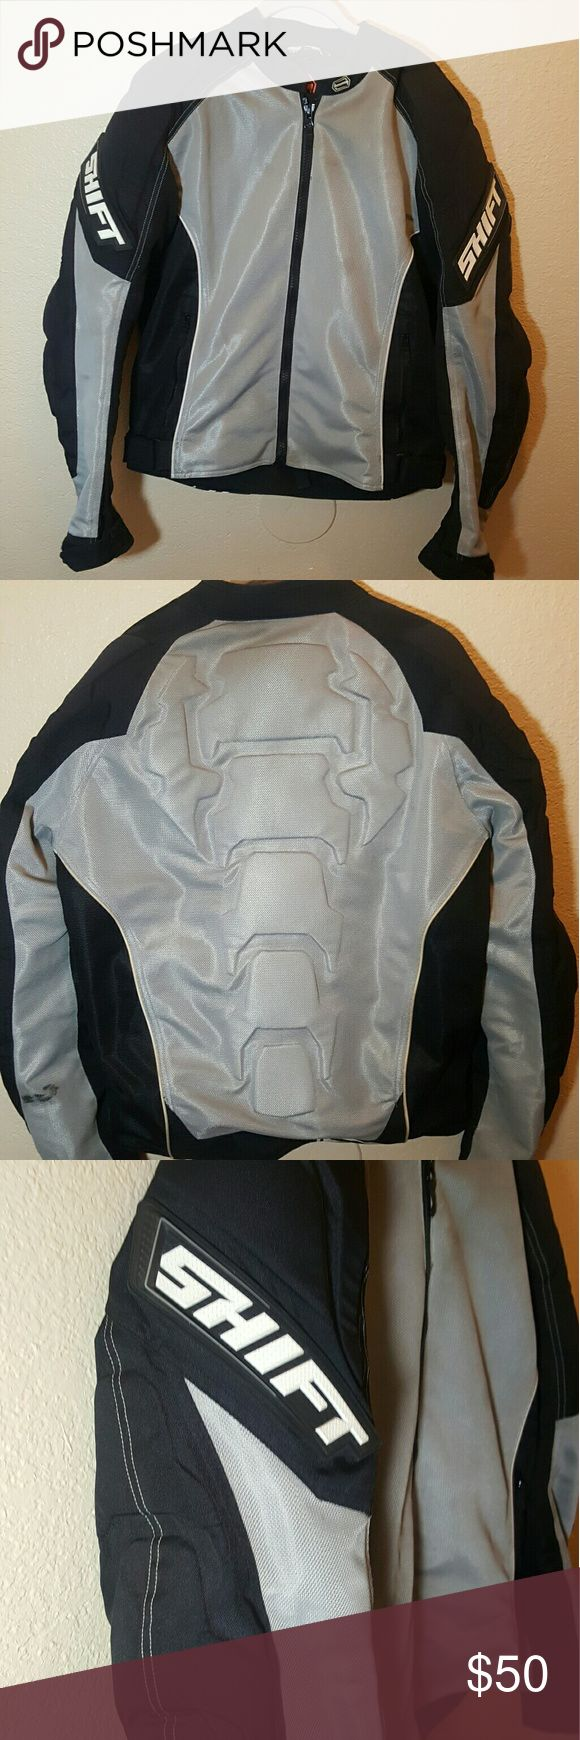 SHIFT Padded Motorcycle Riding Jacket ? Large SHIFT Padded Motorcycle riding jacket. Heavy duty protection. Great condition - does have a black mark on the lower back left sleeve, see 2nd picture. Shift Jackets & Coats